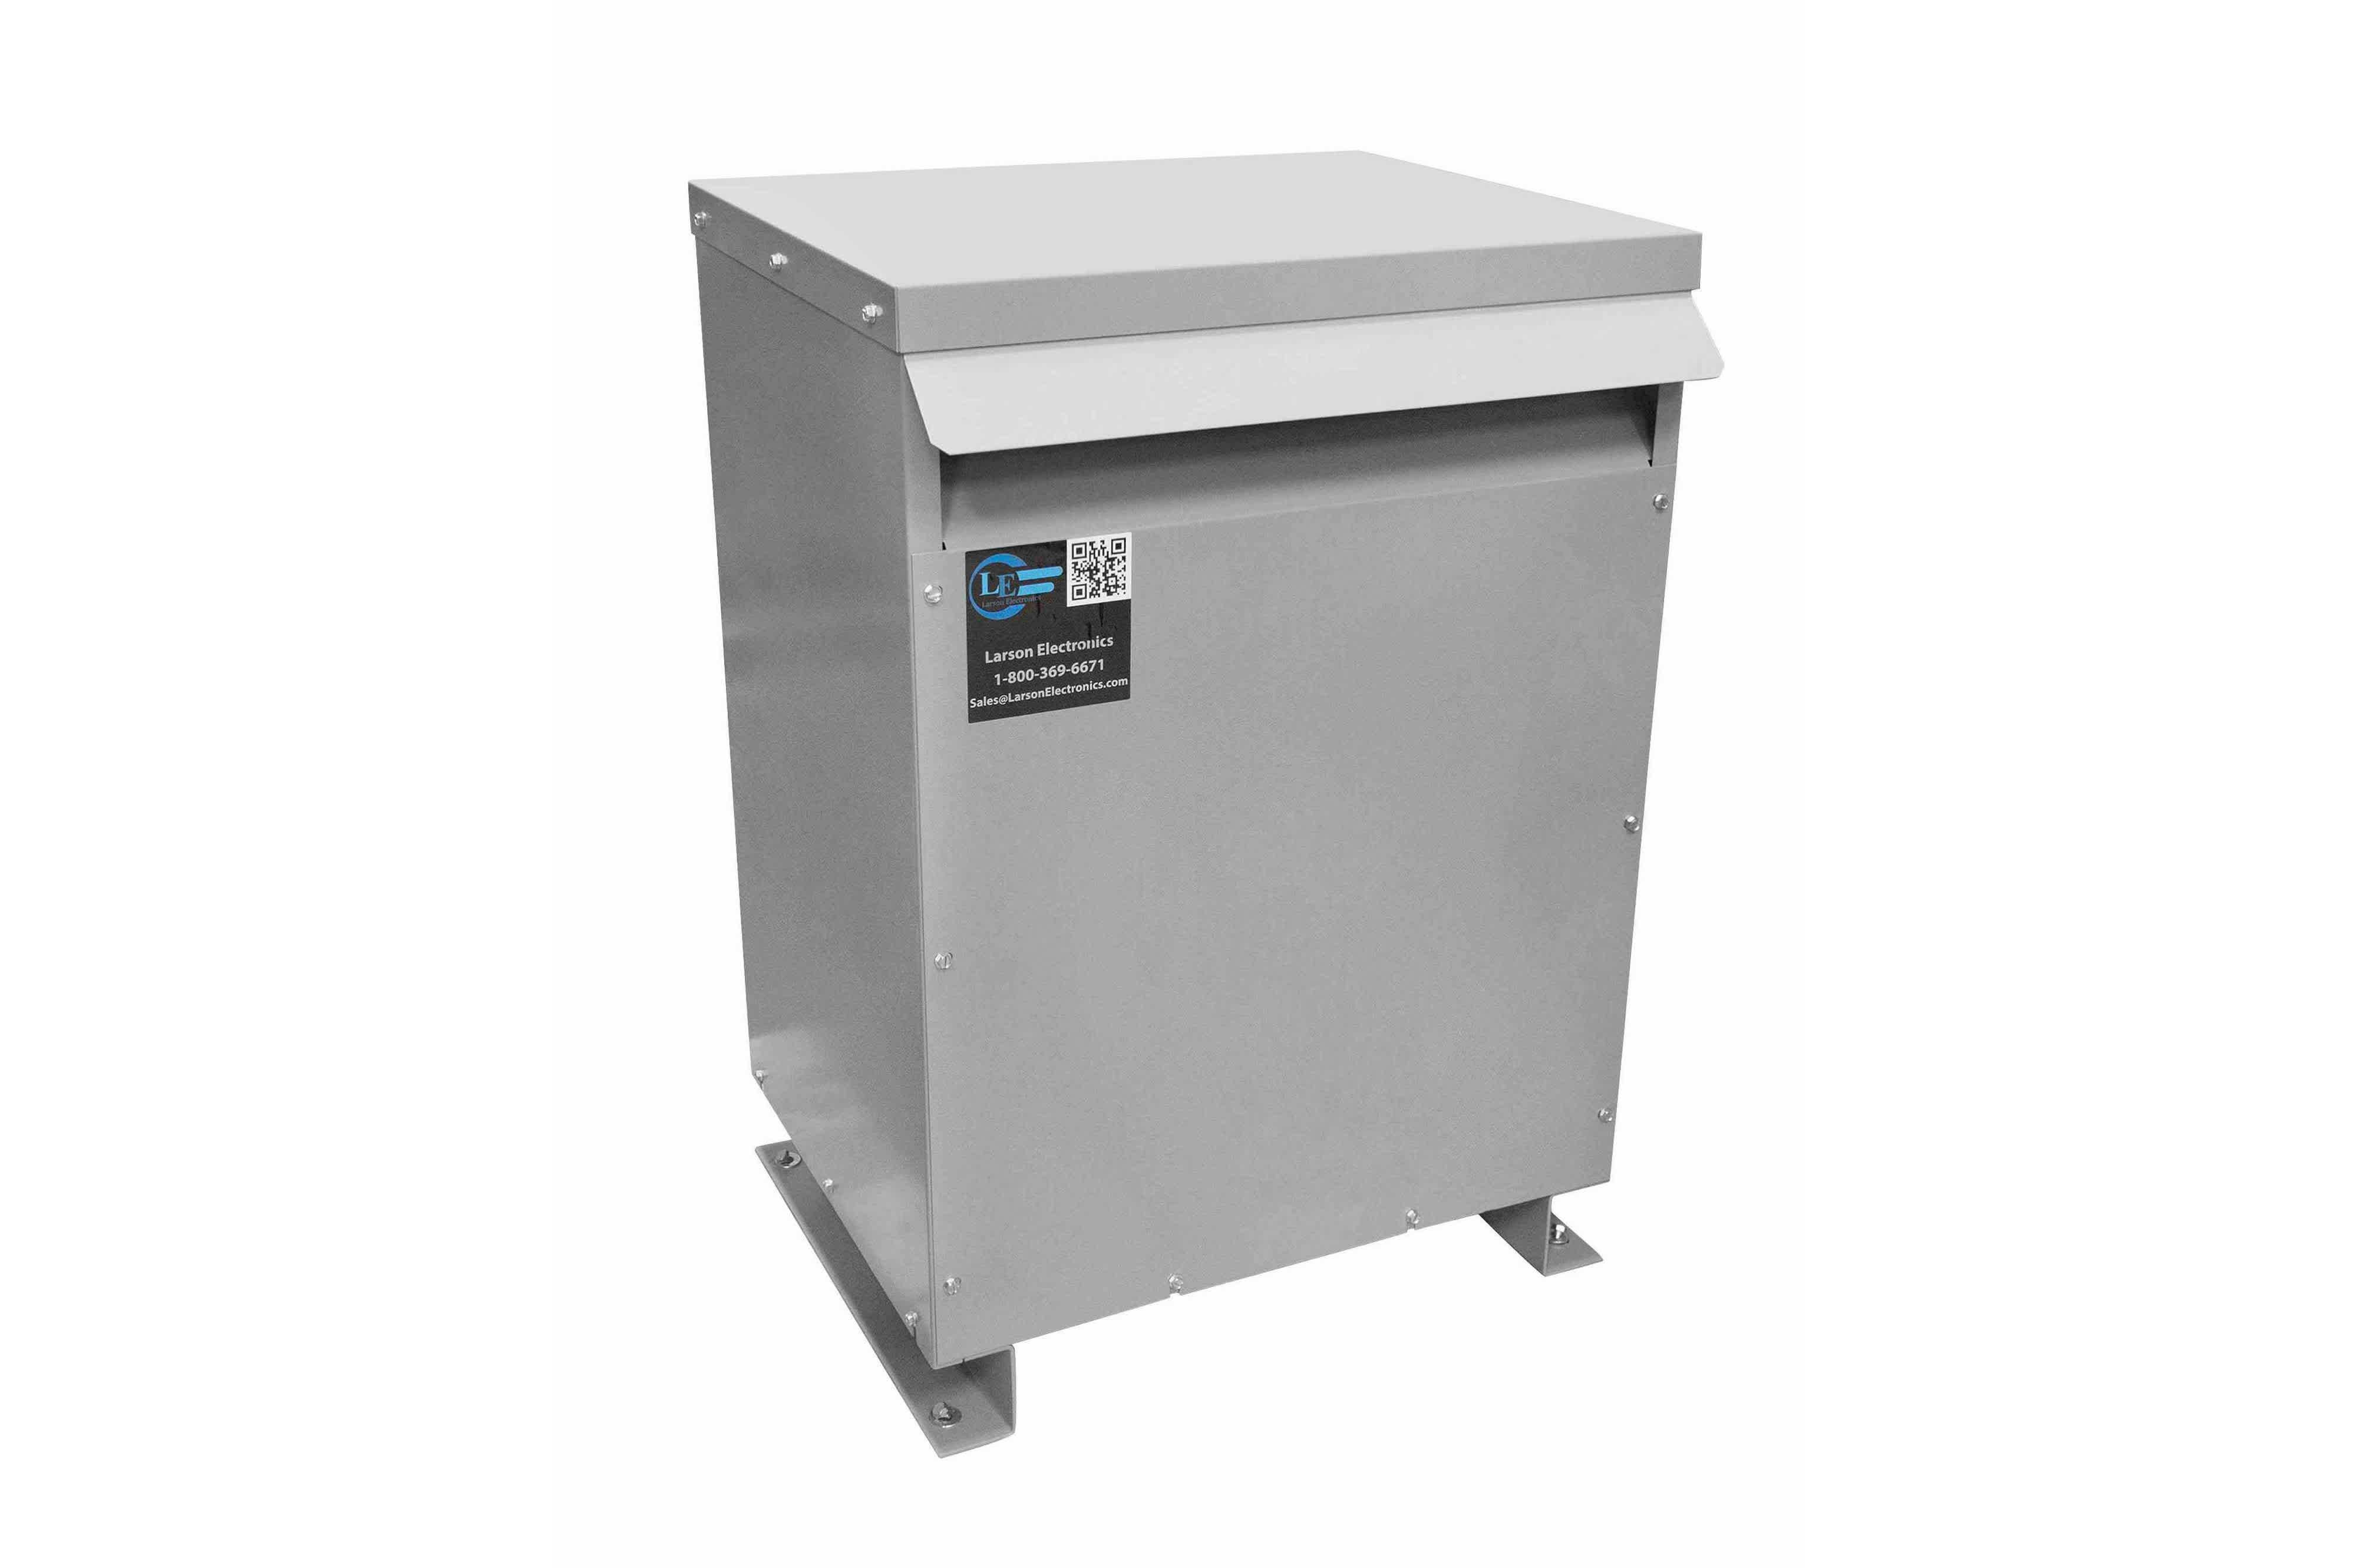 300 kVA 3PH DOE Transformer, 460V Delta Primary, 240V/120 Delta Secondary, N3R, Ventilated, 60 Hz